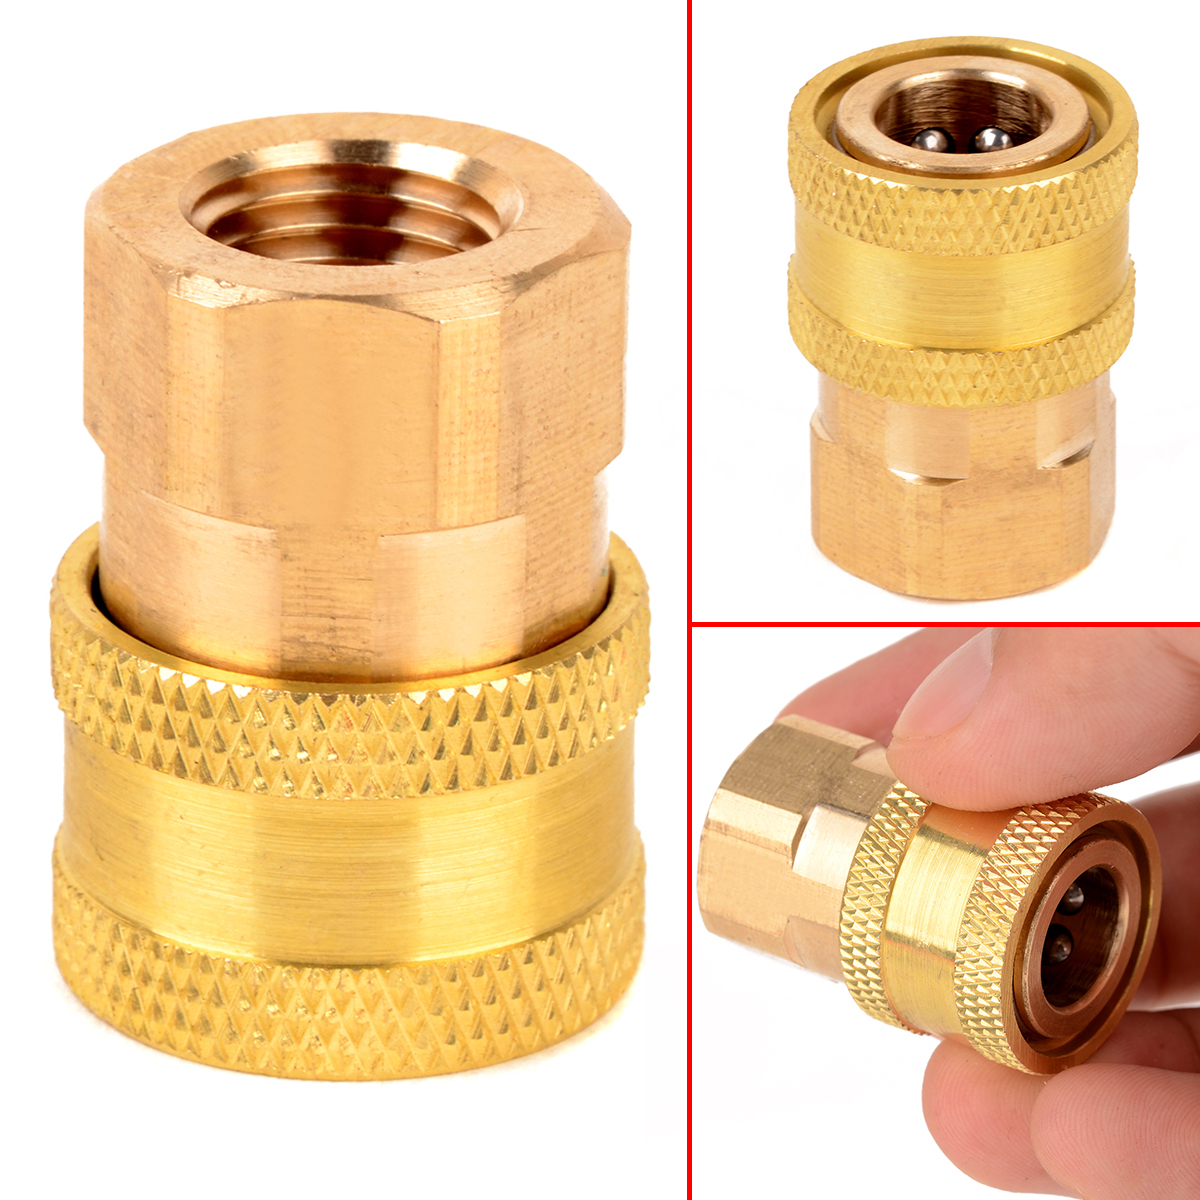 1pc 1/4 NPT Brass Female Quick Connect Coupler for Pressure Washer 15mm Inner Diameter Mayitr Durable Pipe Thread Adapter 50pcs brass pipe fitting hex nipple joint 1 81 4x1 81 43 8x1 83 8x1 4 npt male thread plumb water gas connector accessory